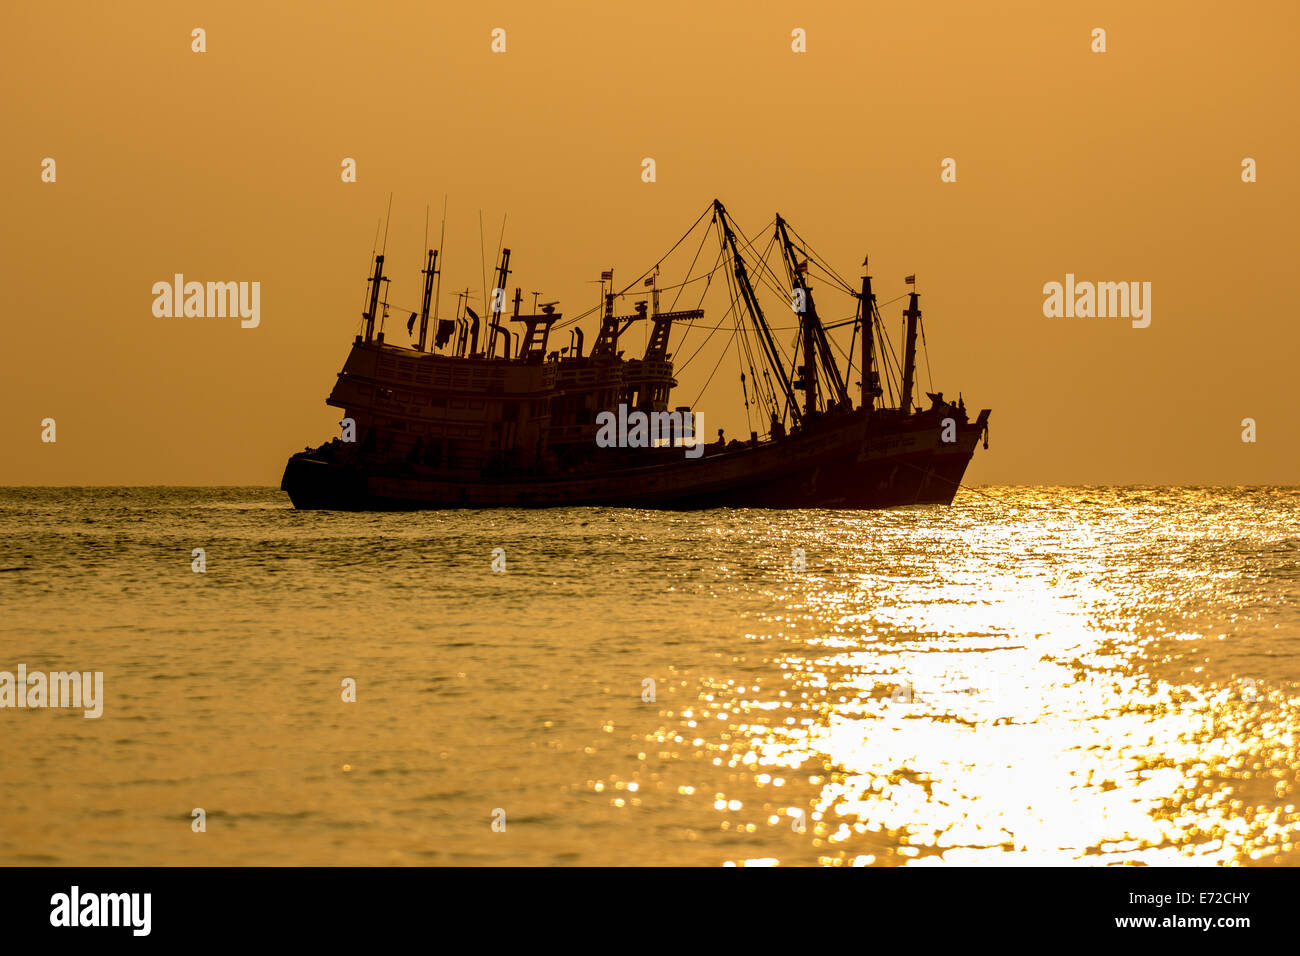 the sillhouette fishing boat on sunset - Stock Image